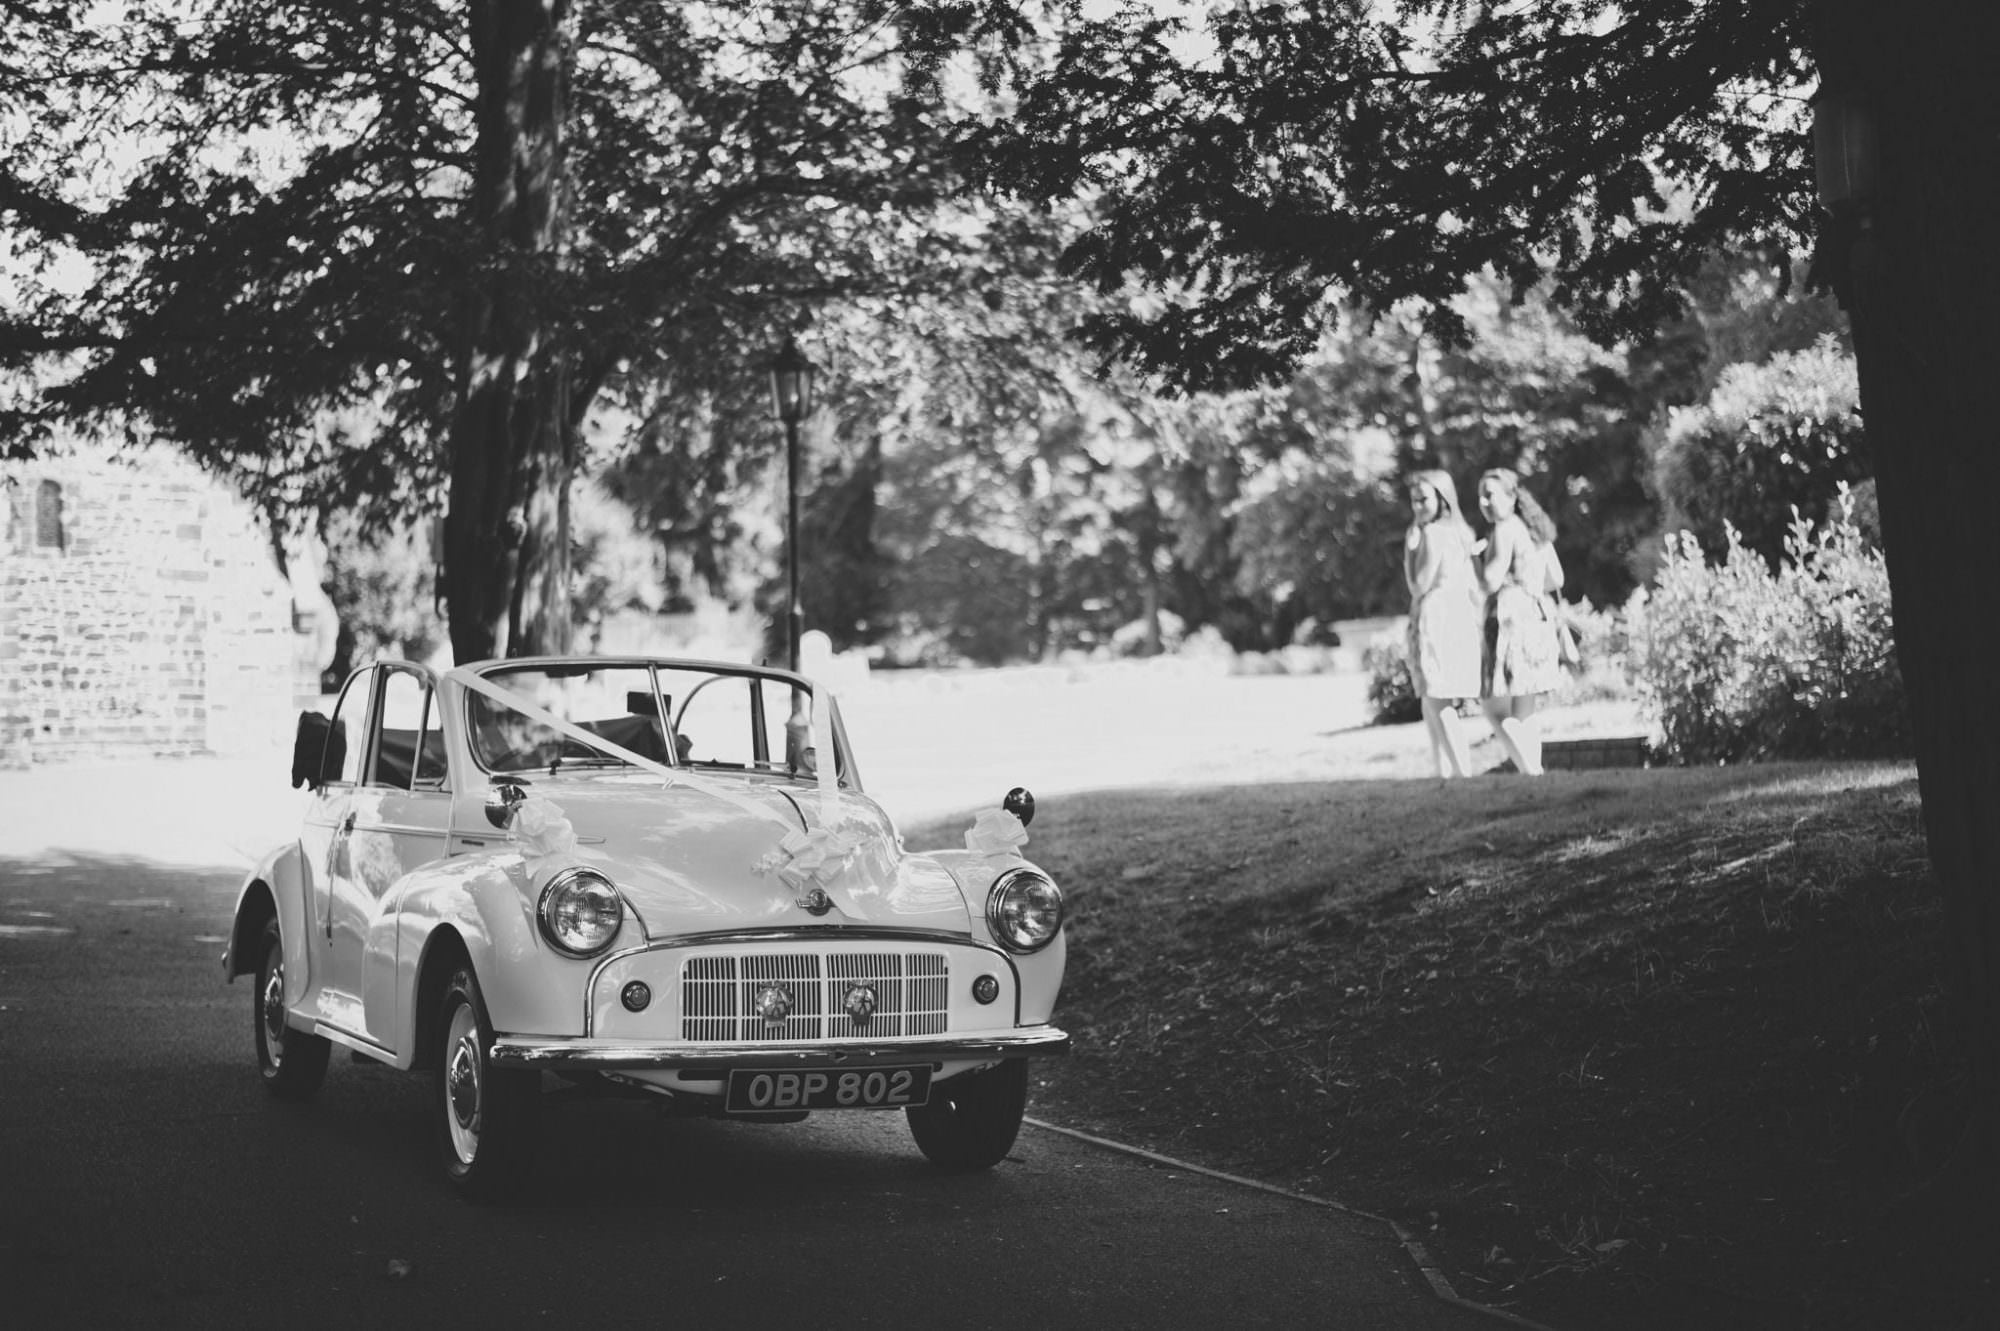 Wedding car at Canford magna church